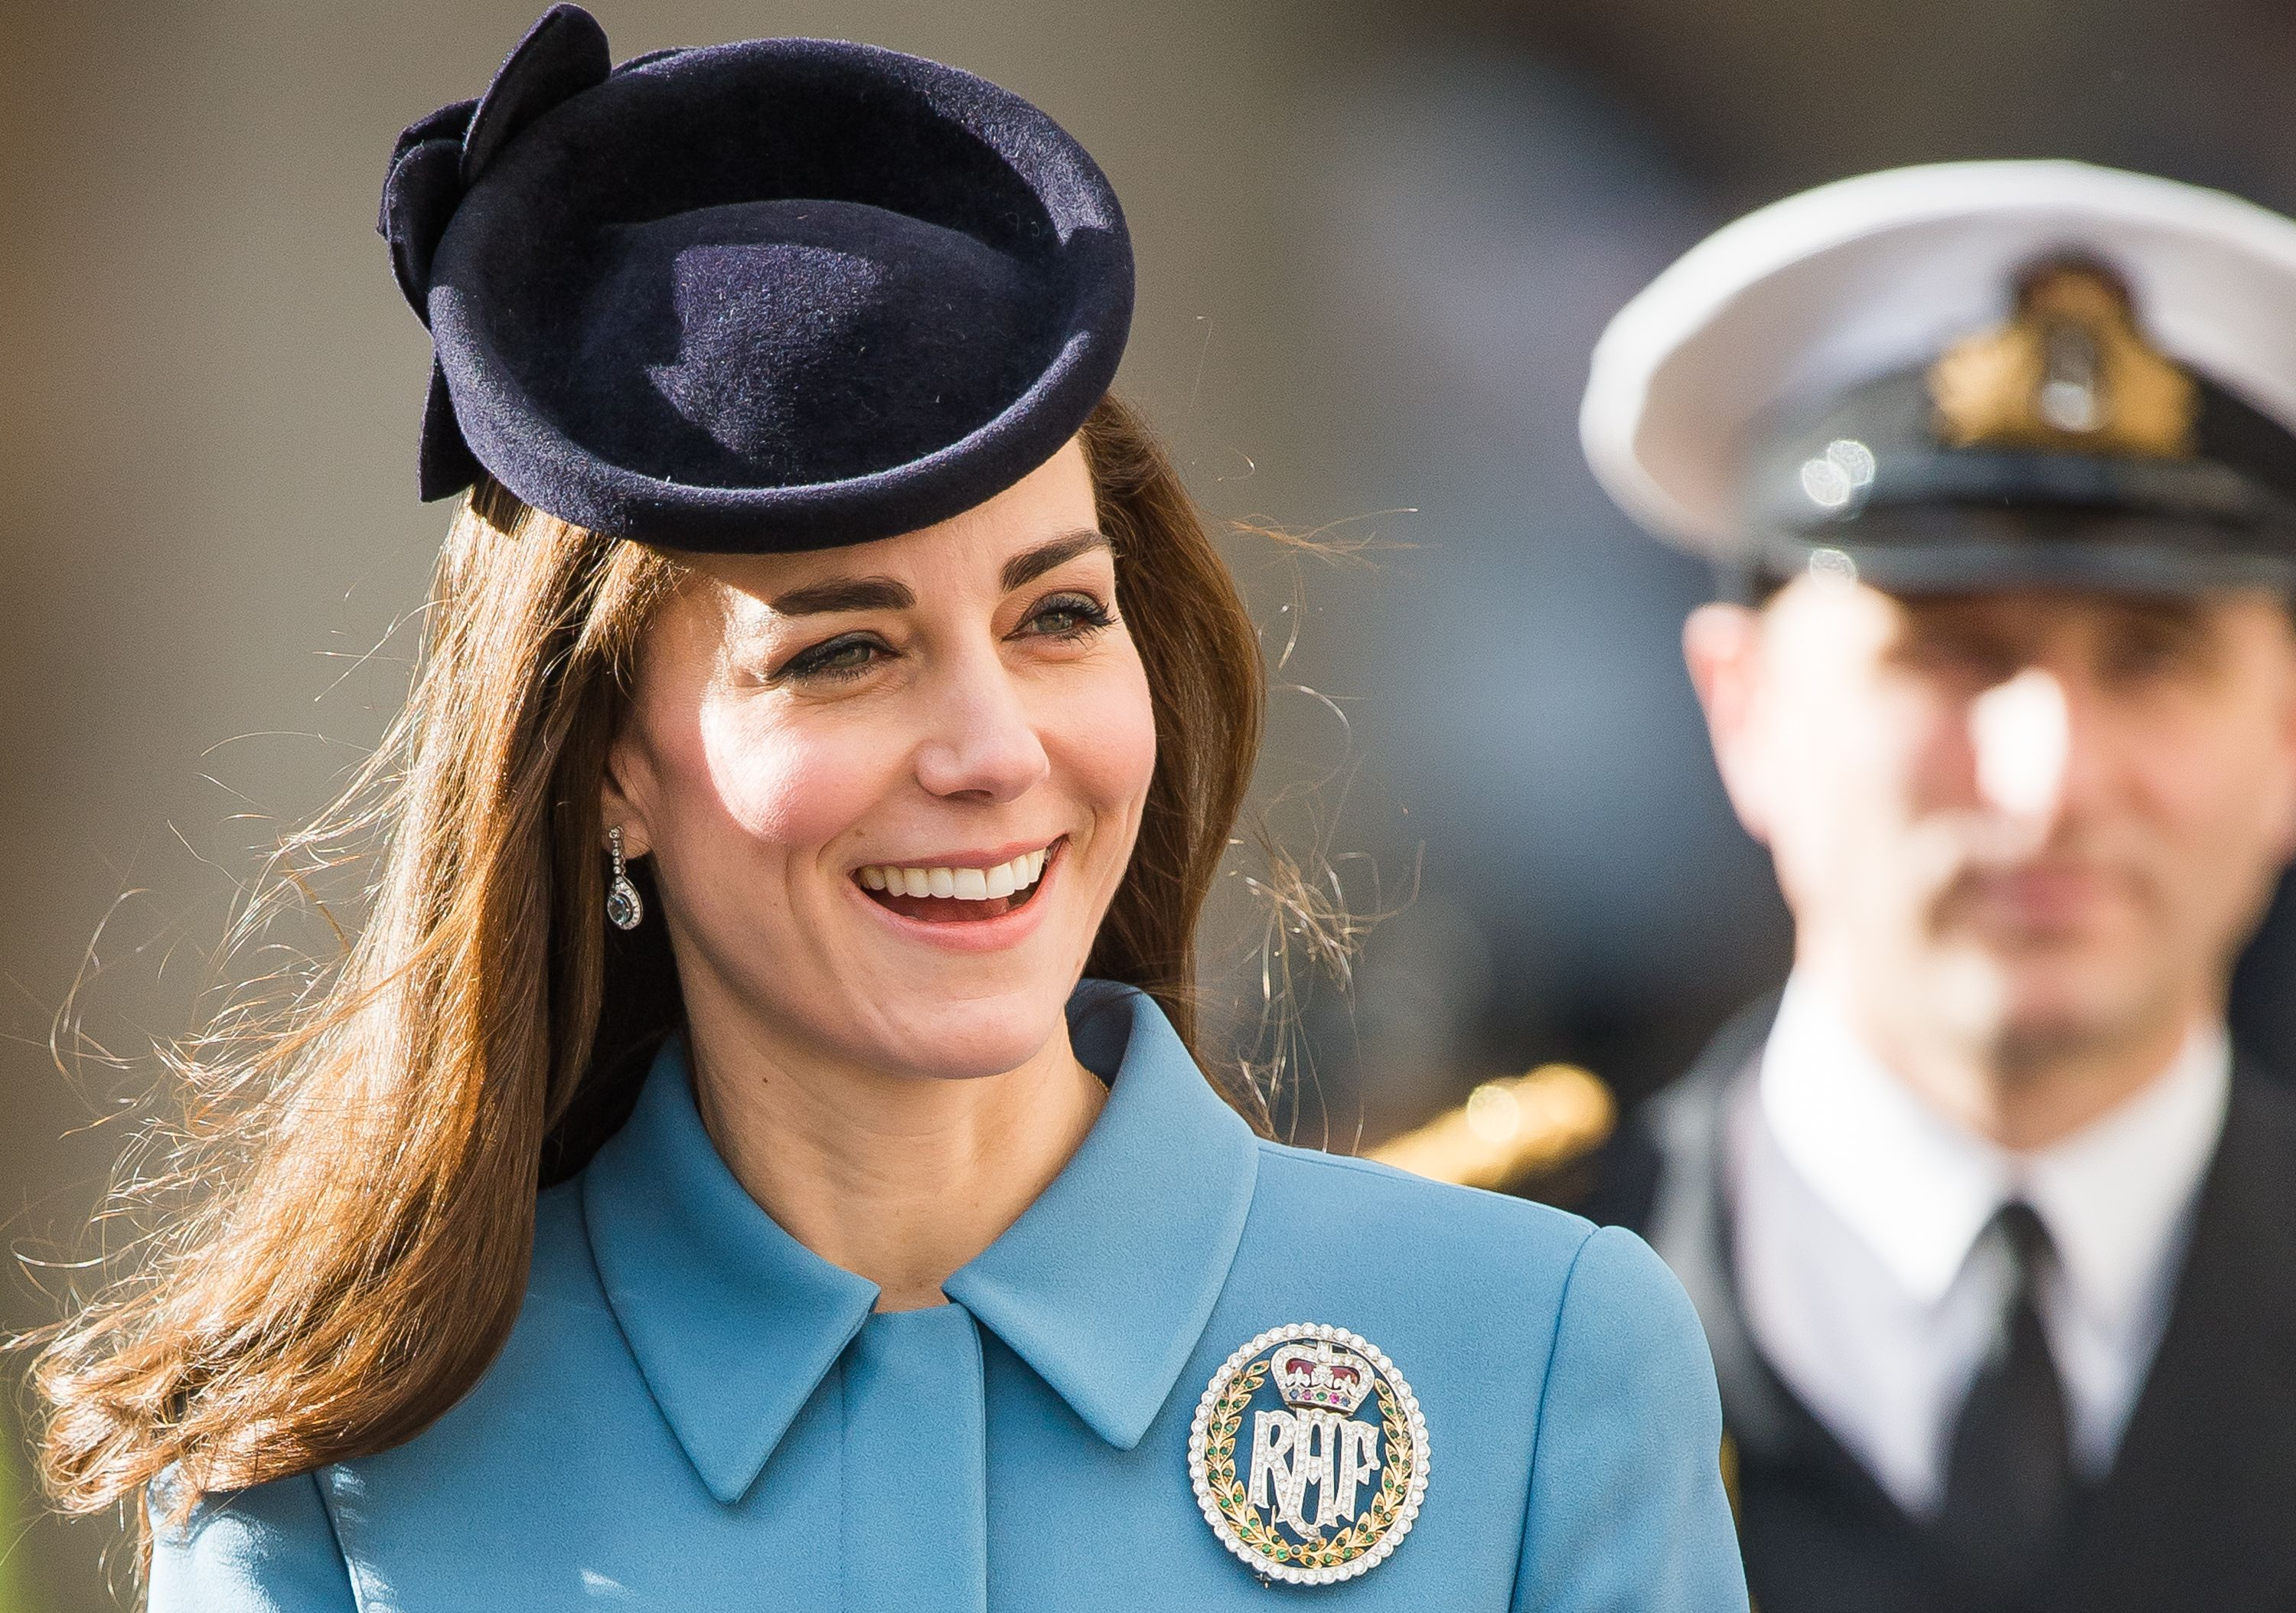 Kate Middleton Is a Brooch Influencer, These Photos Are Proof